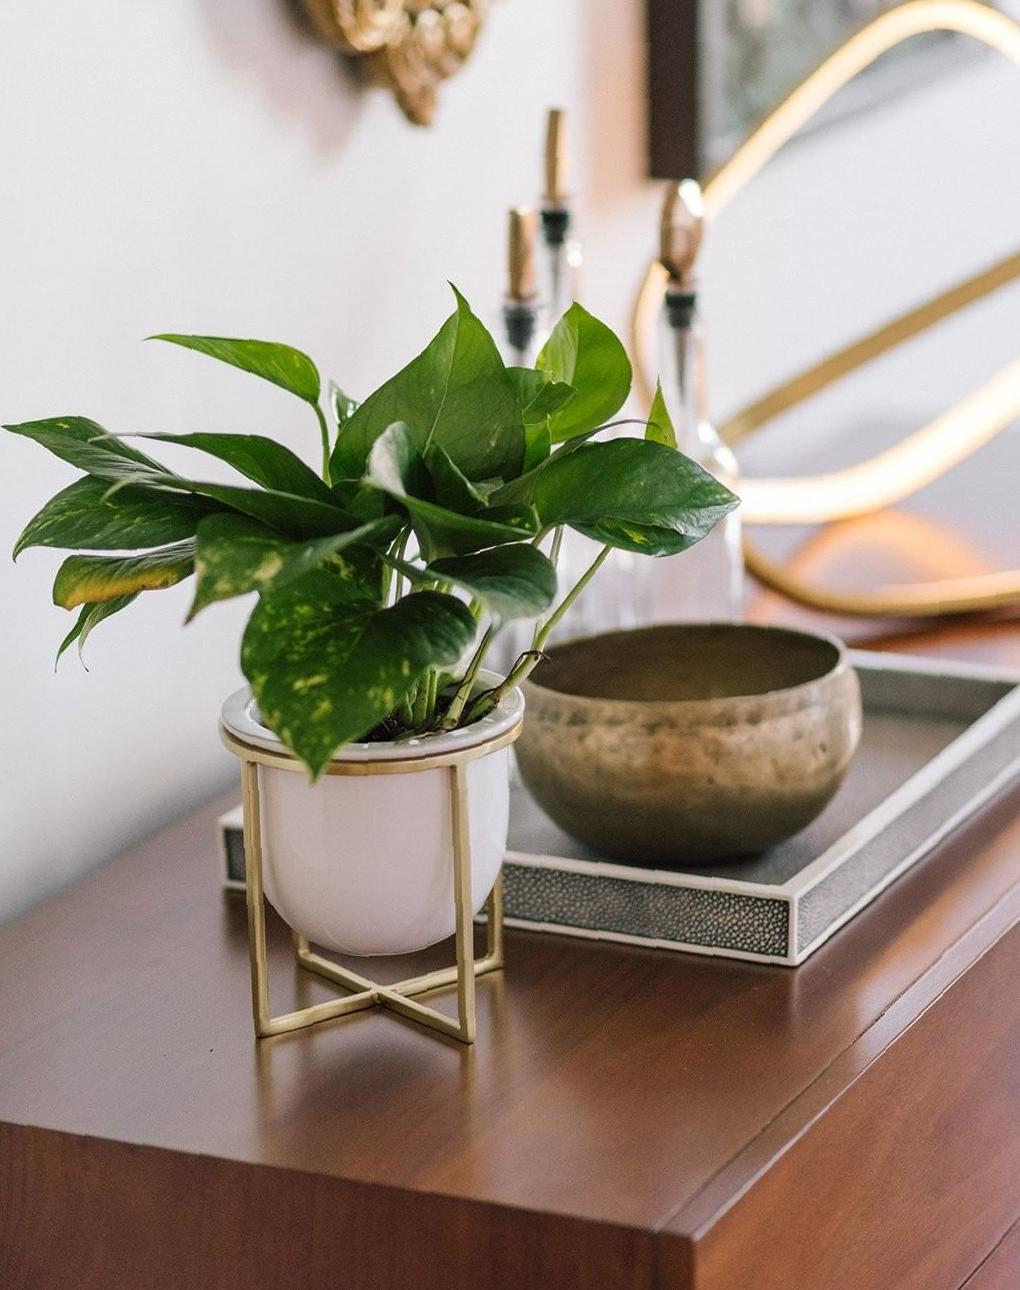 Gorgeous Indoor Plants Idea Images for Decoration plants, indoor plants, indoor plants ideas, indoor plants images, gorgeous indoor plants